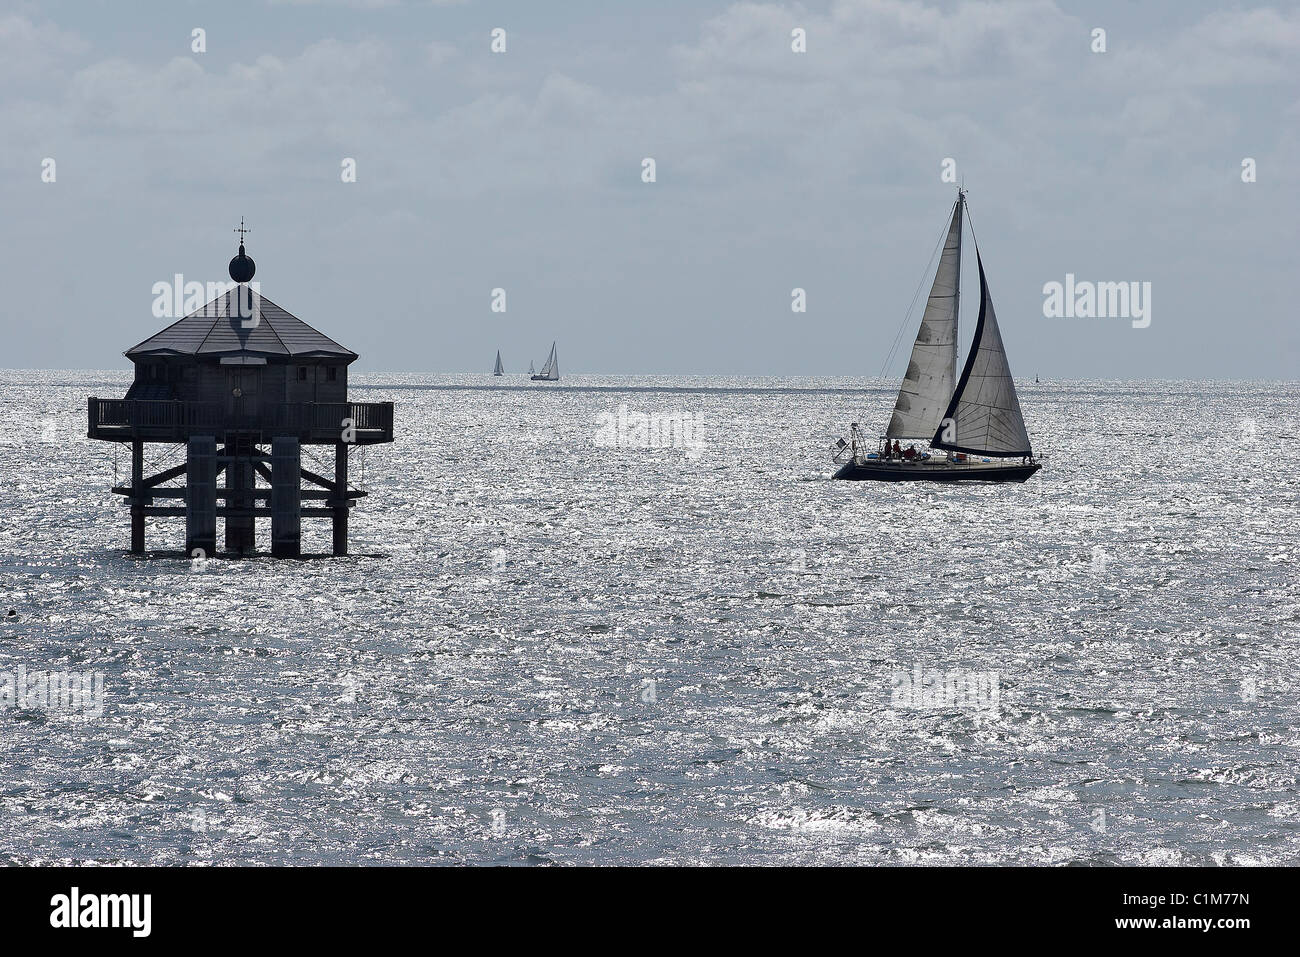 France, Charente Maritime, La Rochelle, the Bout du Monde (end of the world) lighthouse - Stock Image